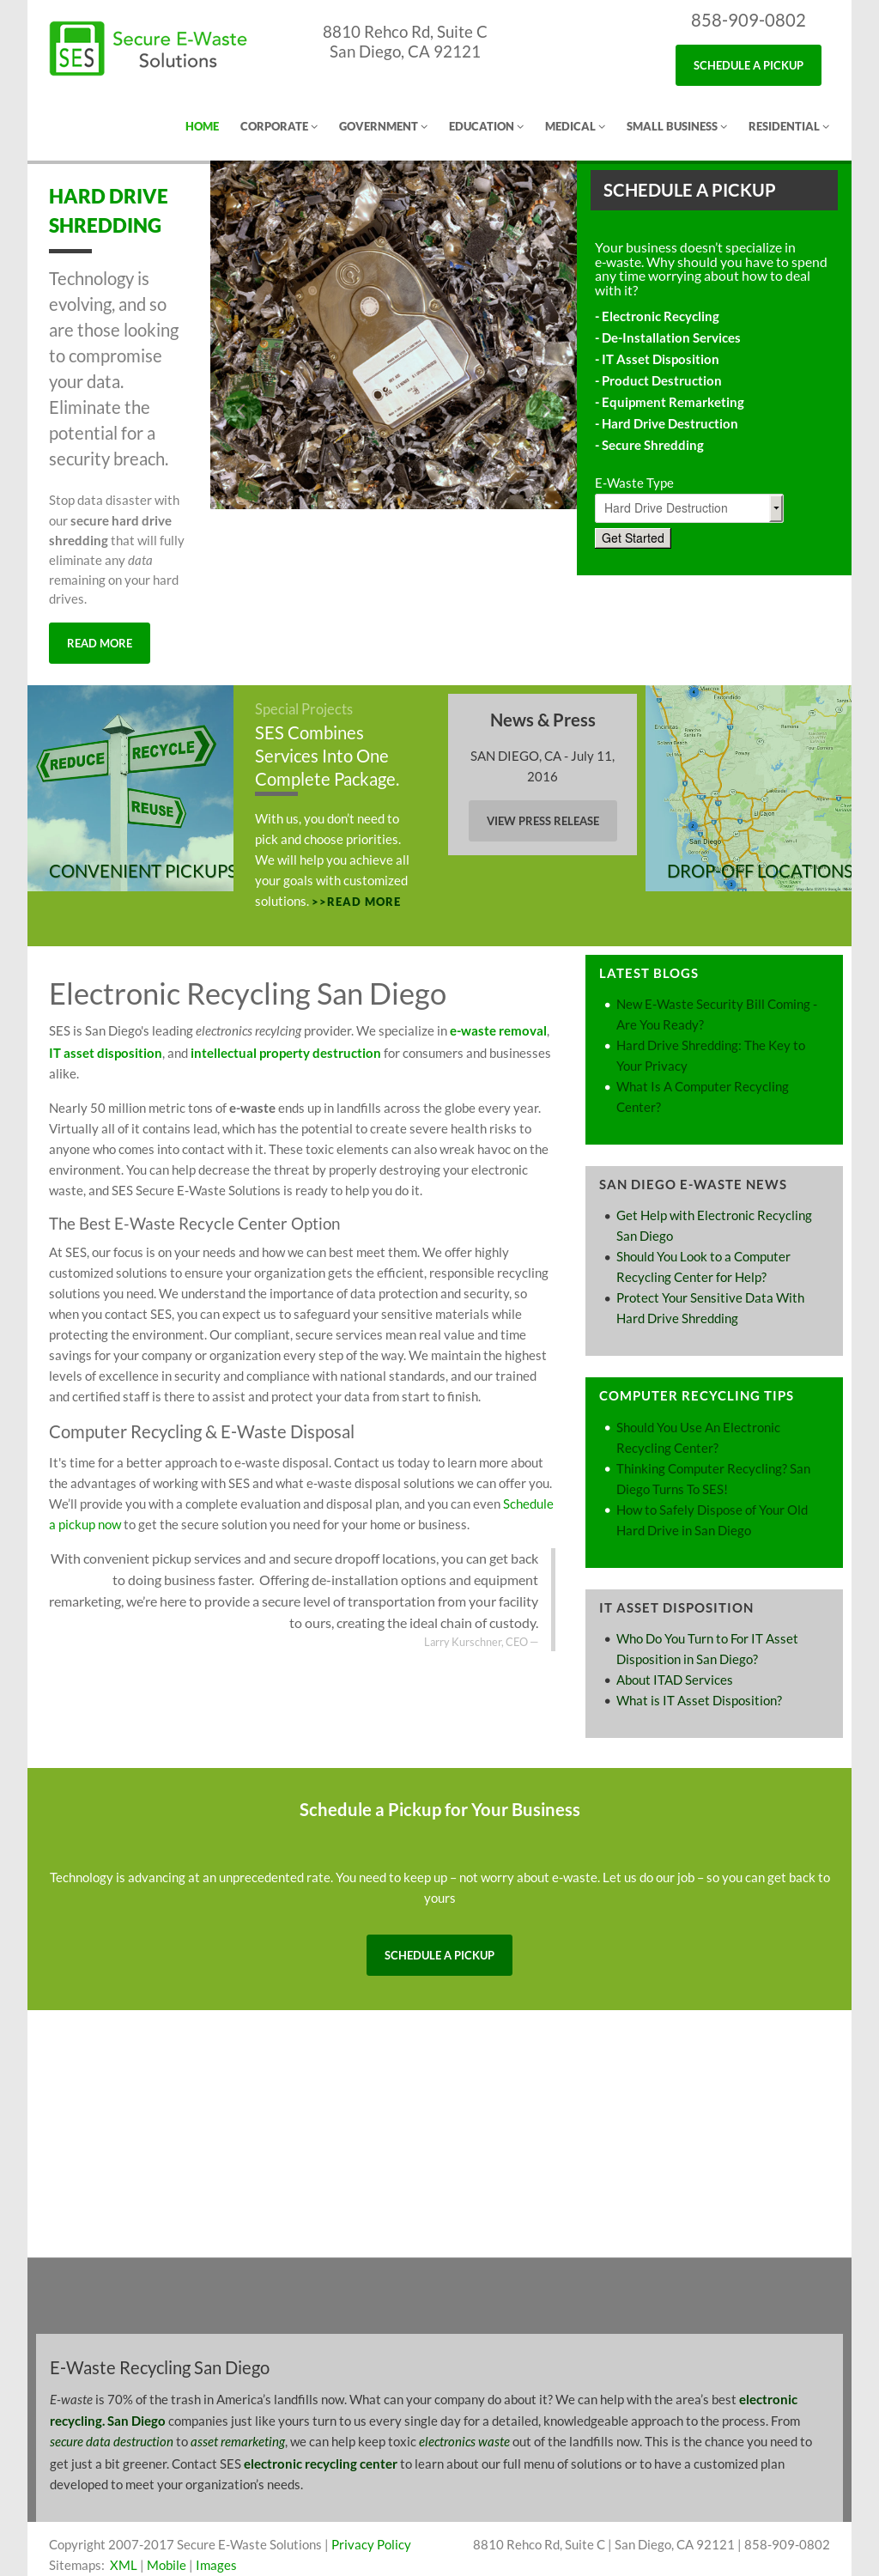 ses secure e waste solutions competitors revenue and employees